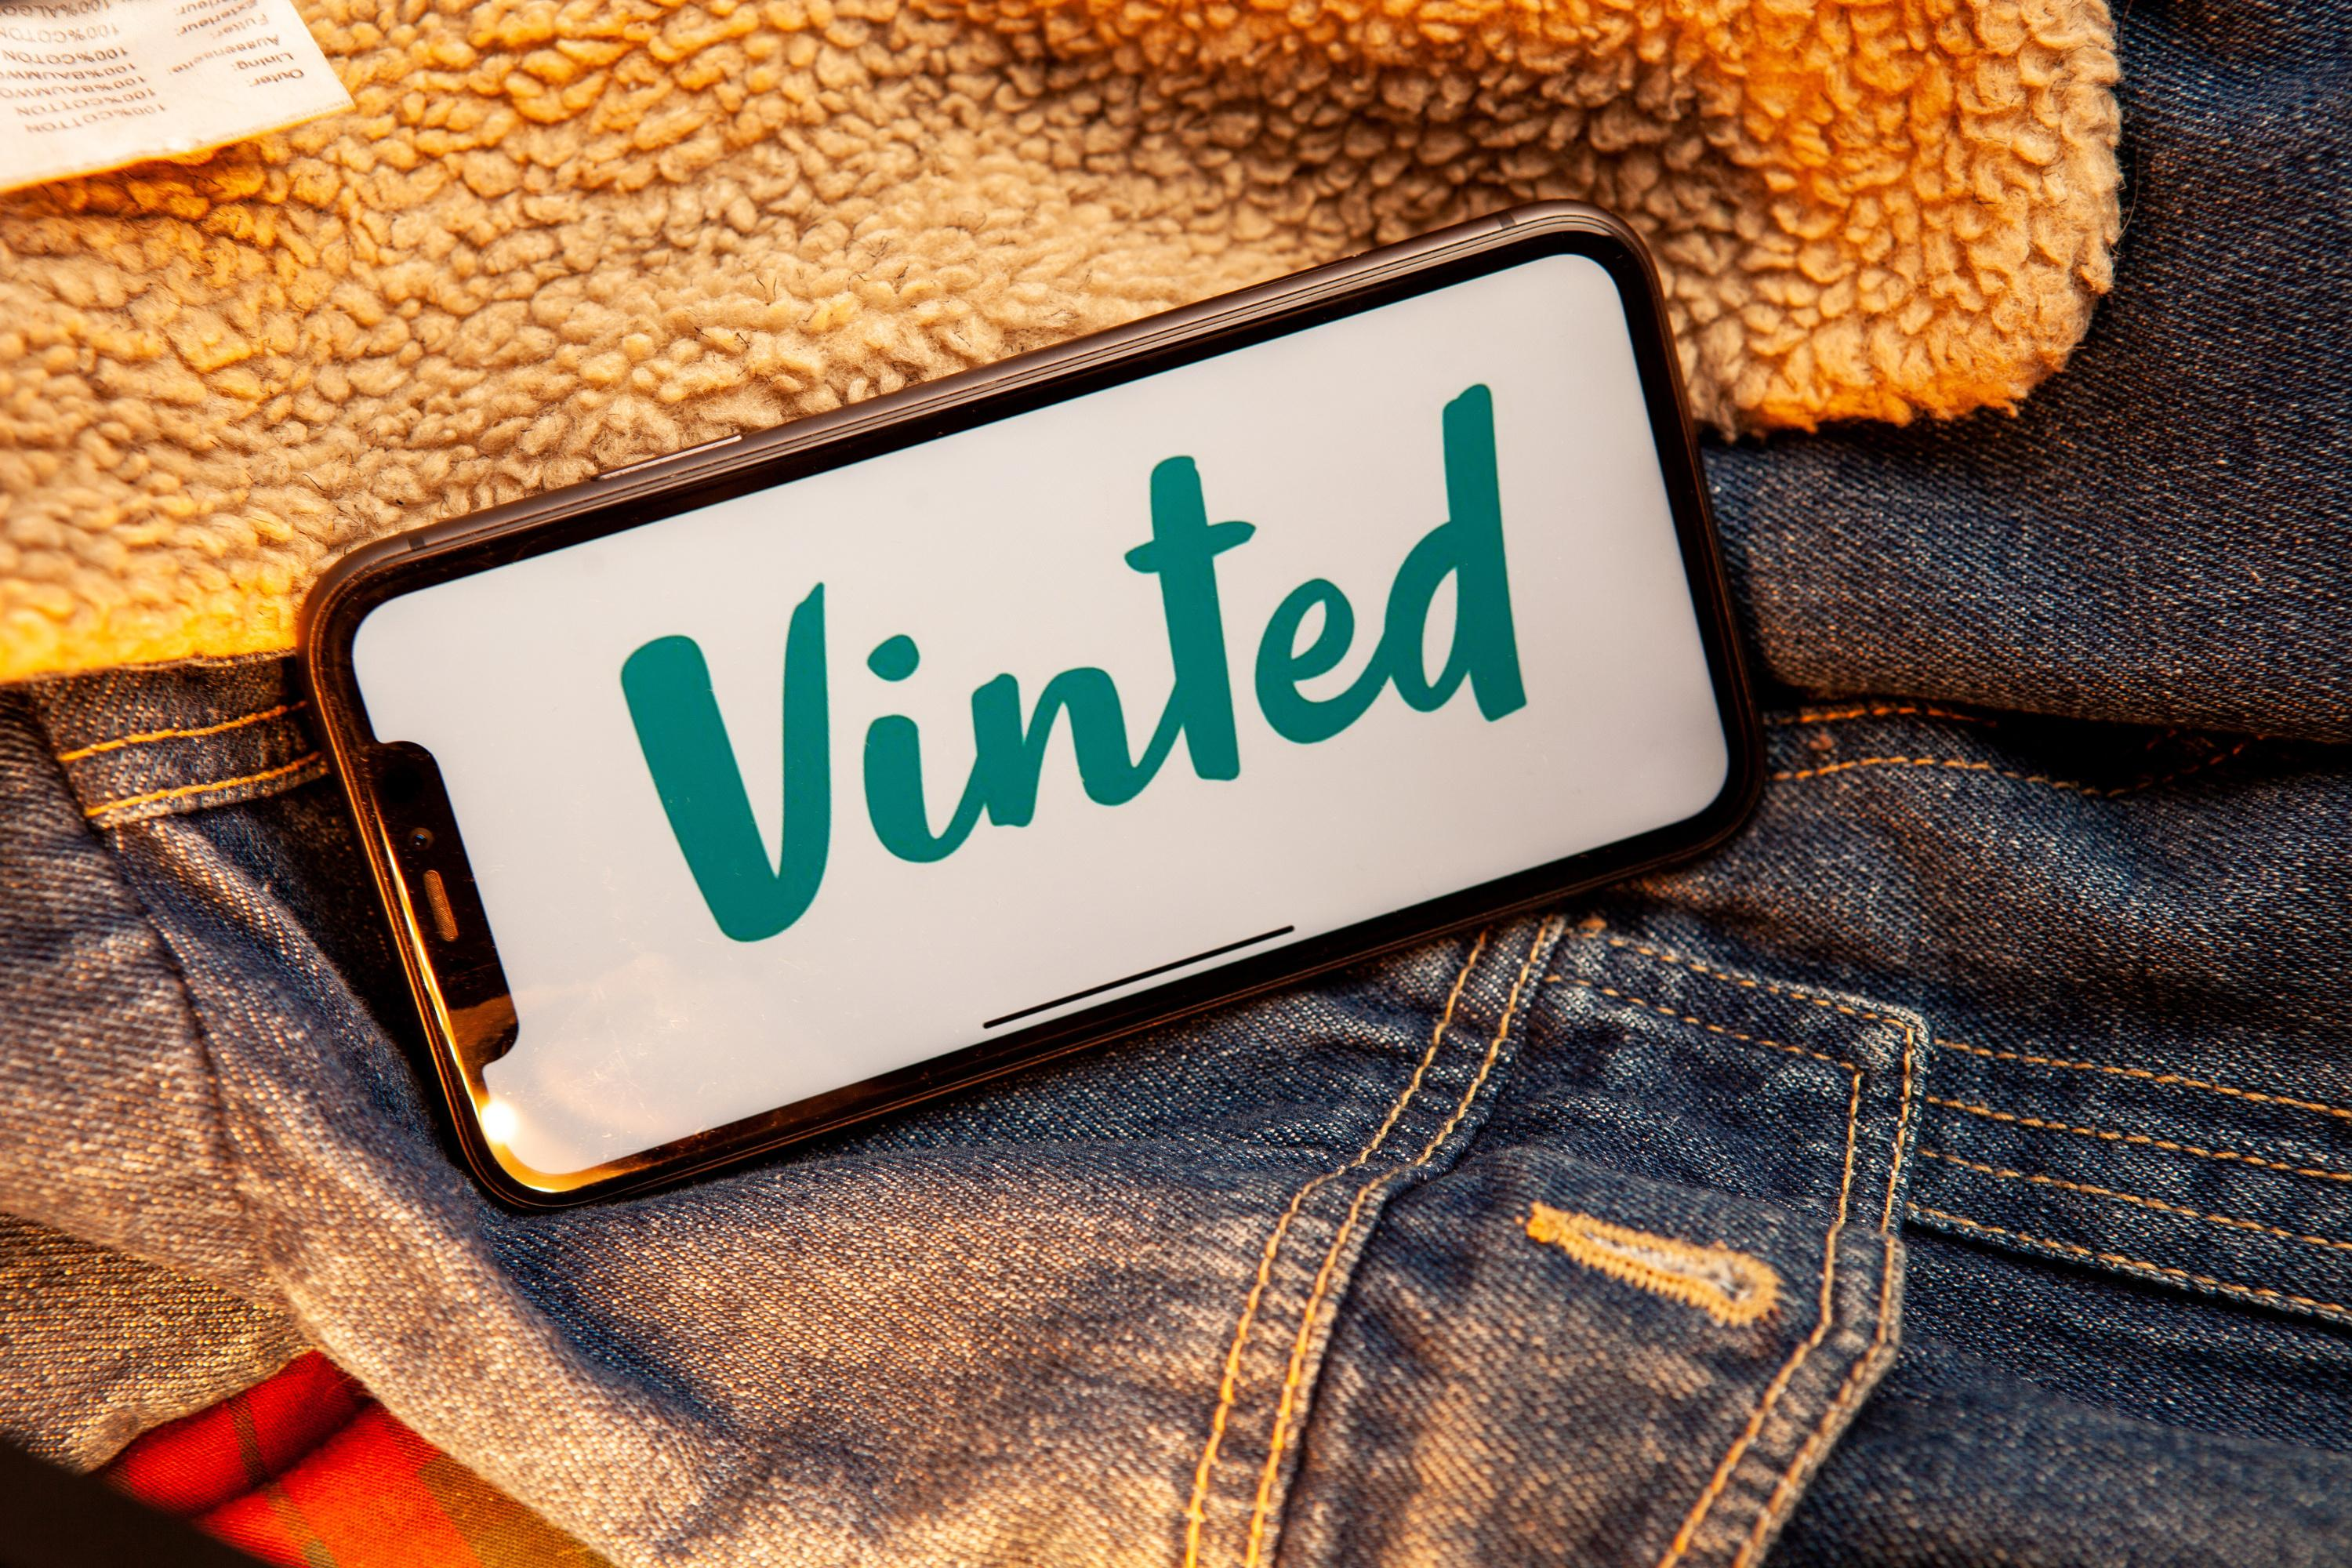 Vinted Iphone Screen with on second hand vintage denim jacket. Vinted is a Lithuanian online marketplace. #Vinted